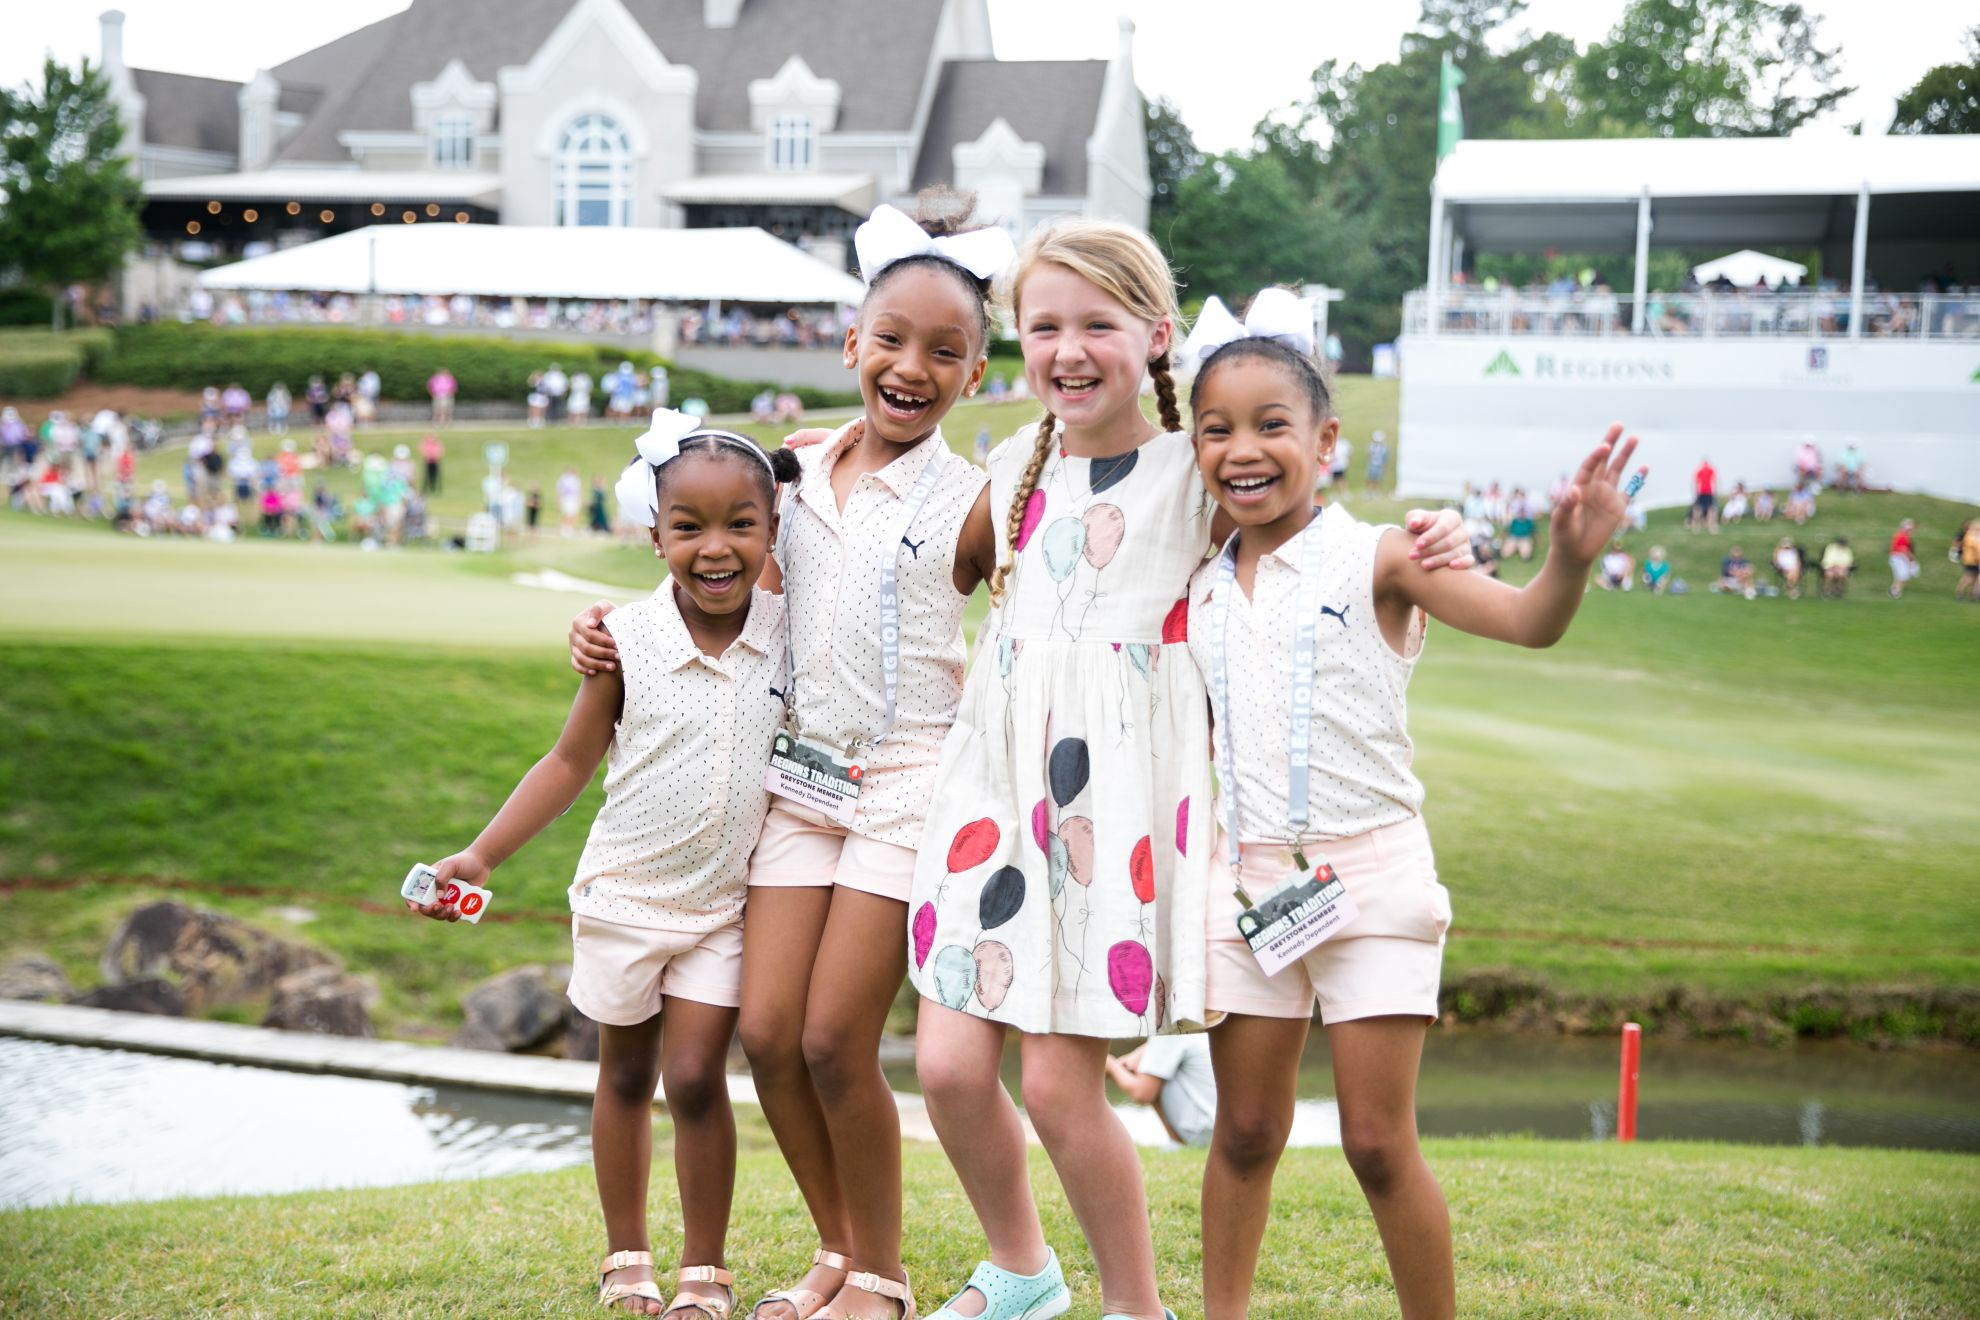 Young girls smiling in a group shot at the 2021 Regions Tradition at Greystone. hoto credit Grace Vroom, Bruno Events